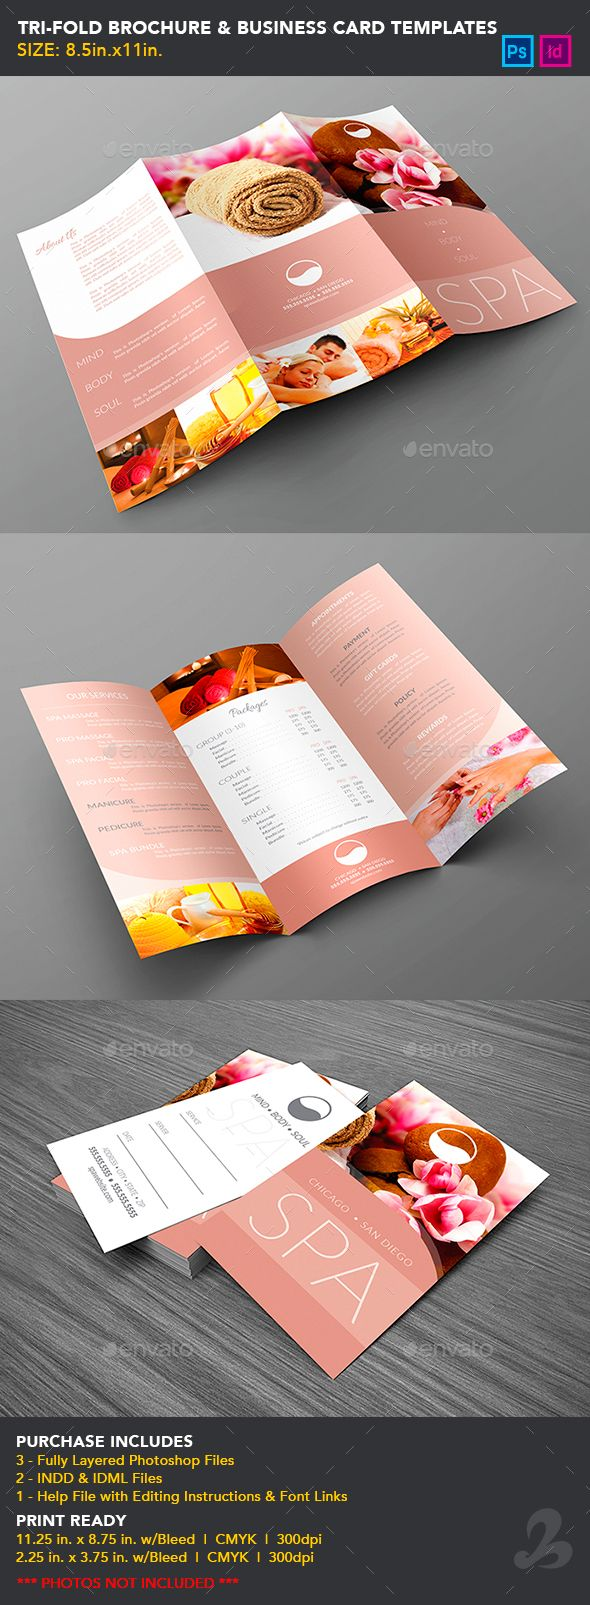 Best spa tri fold brochure business card templates only best spa tri fold brochure business card templates only available here wajeb Images